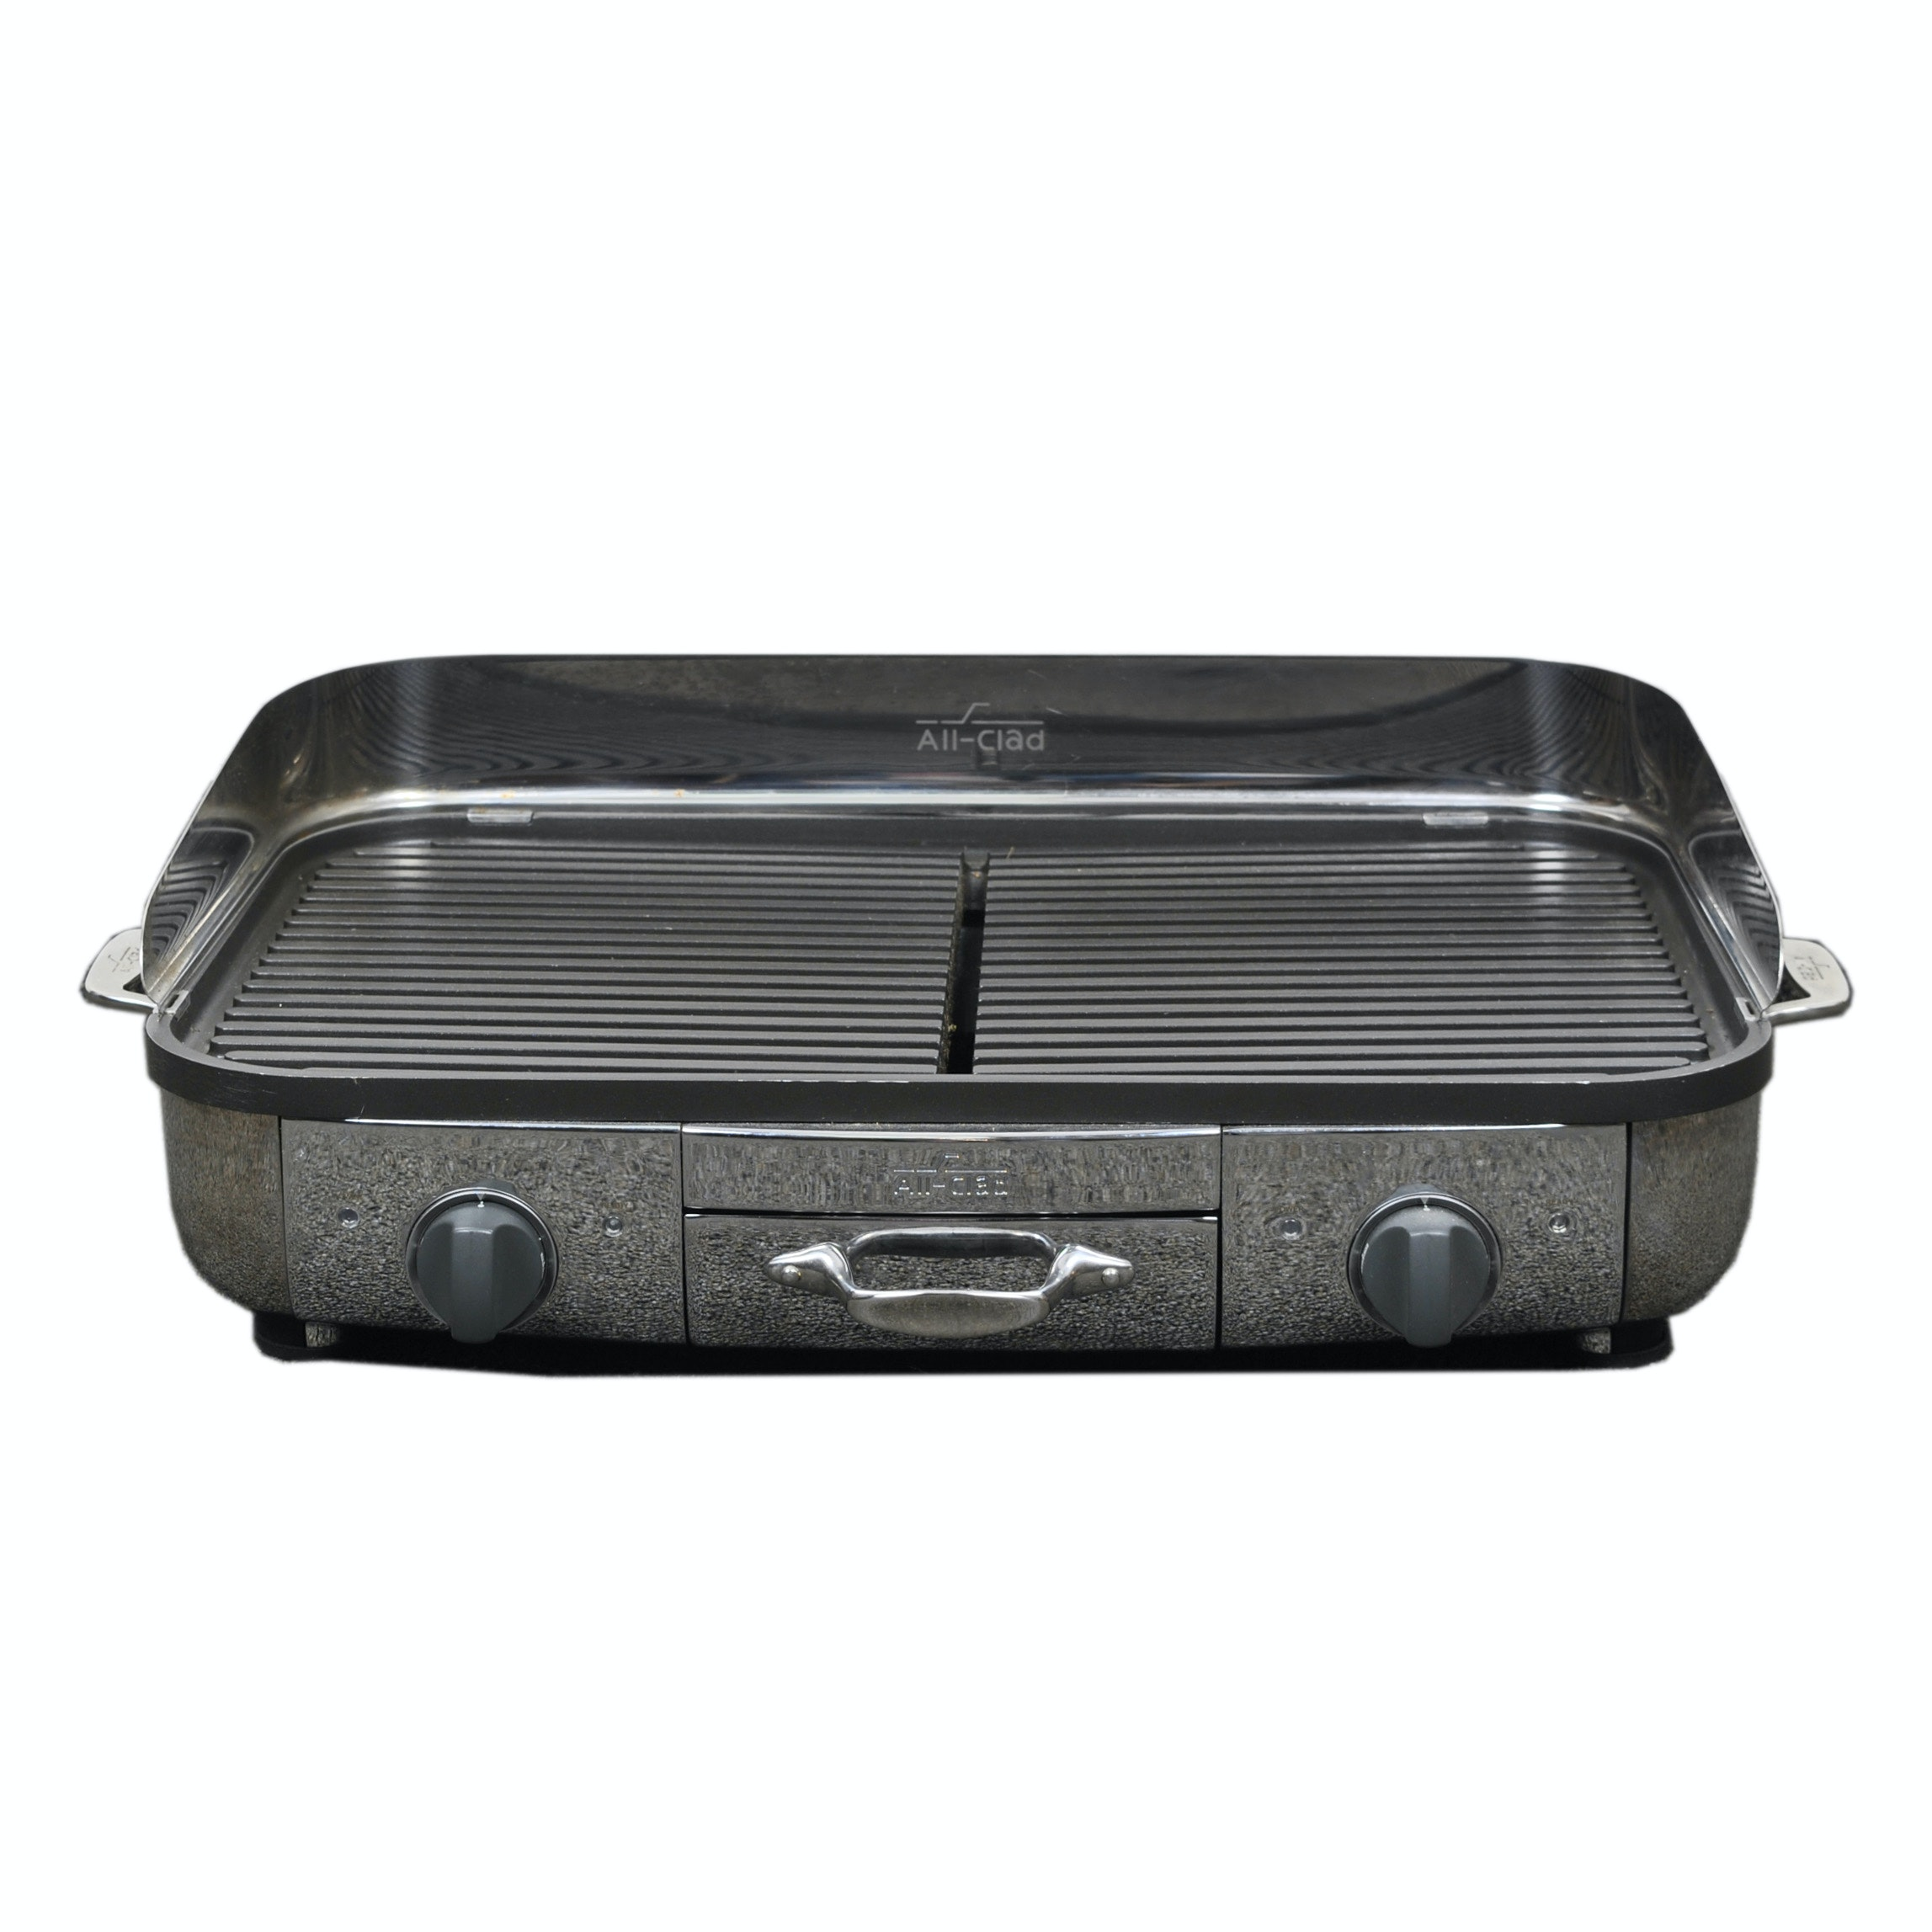 All-Clad Electric Grill